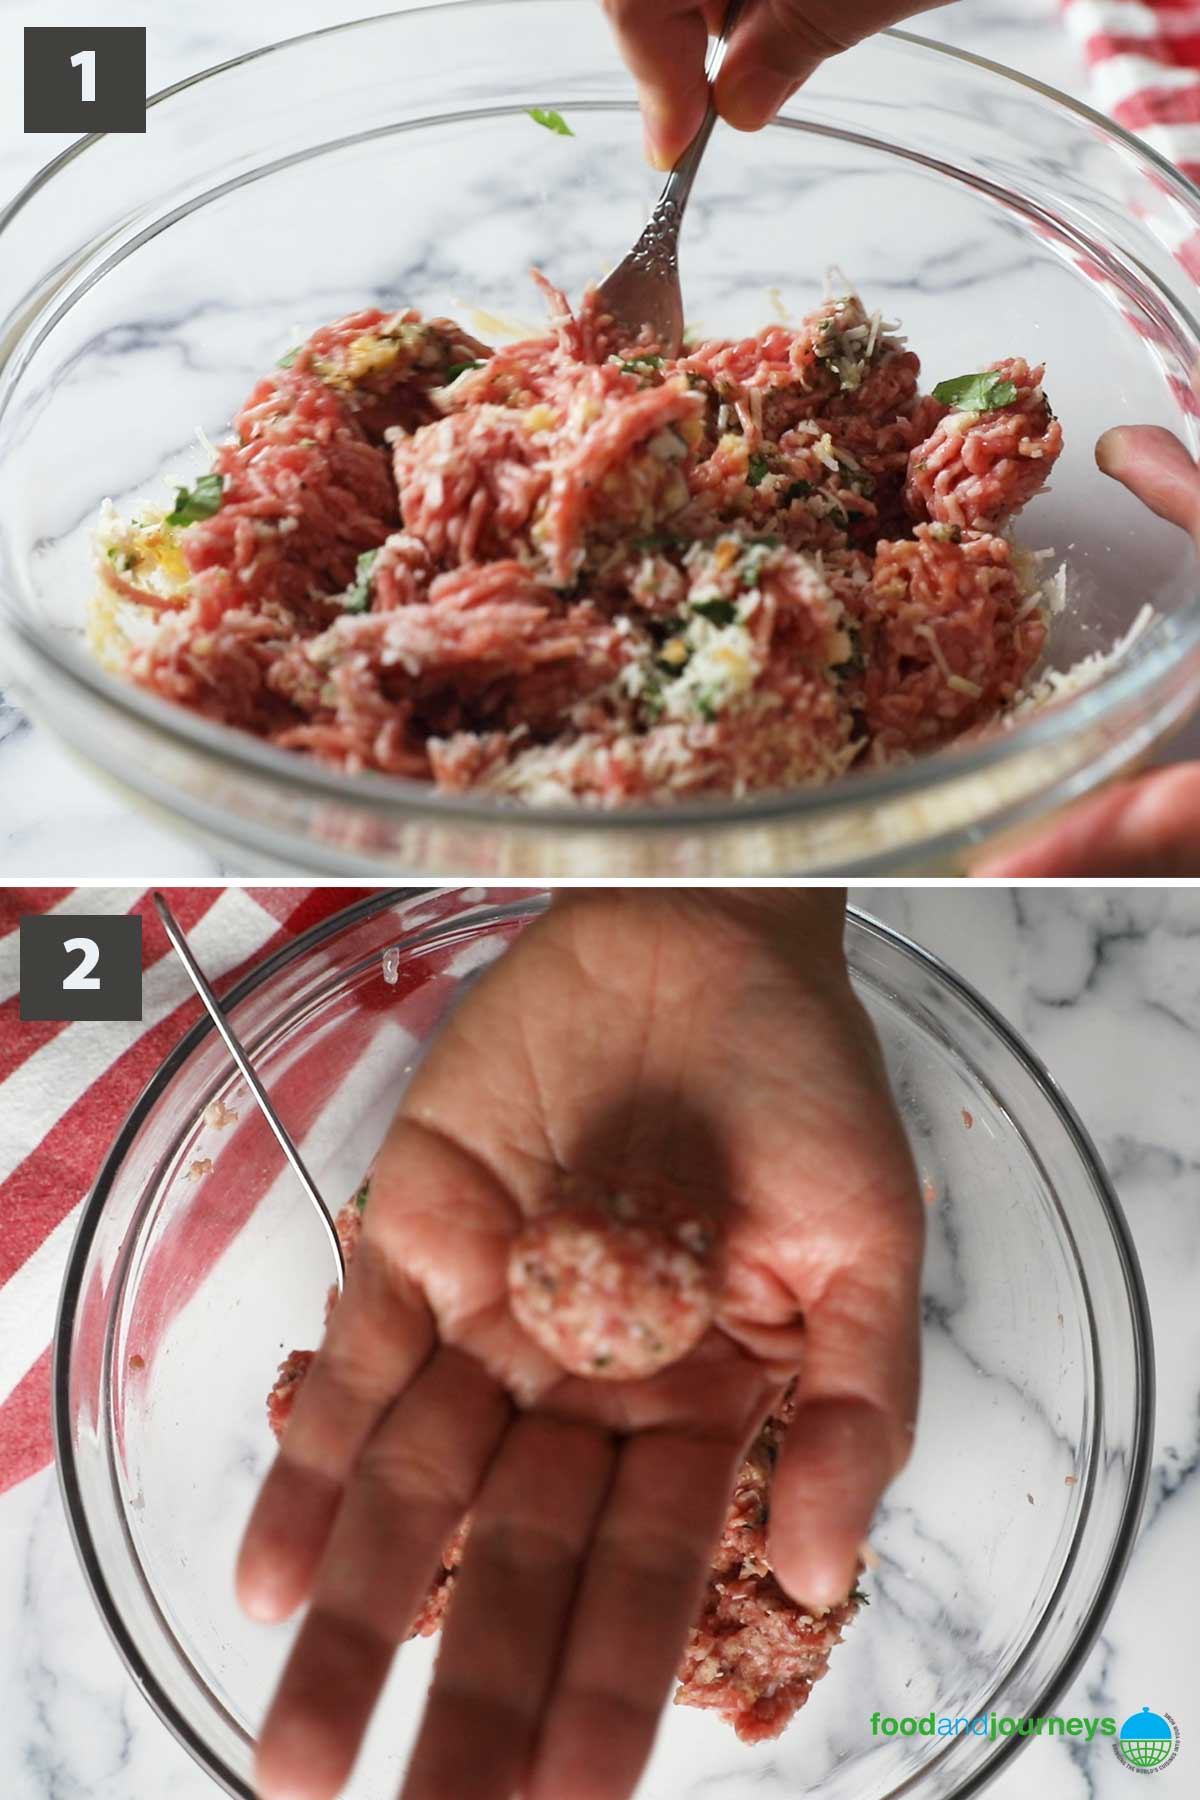 First part of a collage of images showing the step by step process on how to make Polpettine di Carne at home